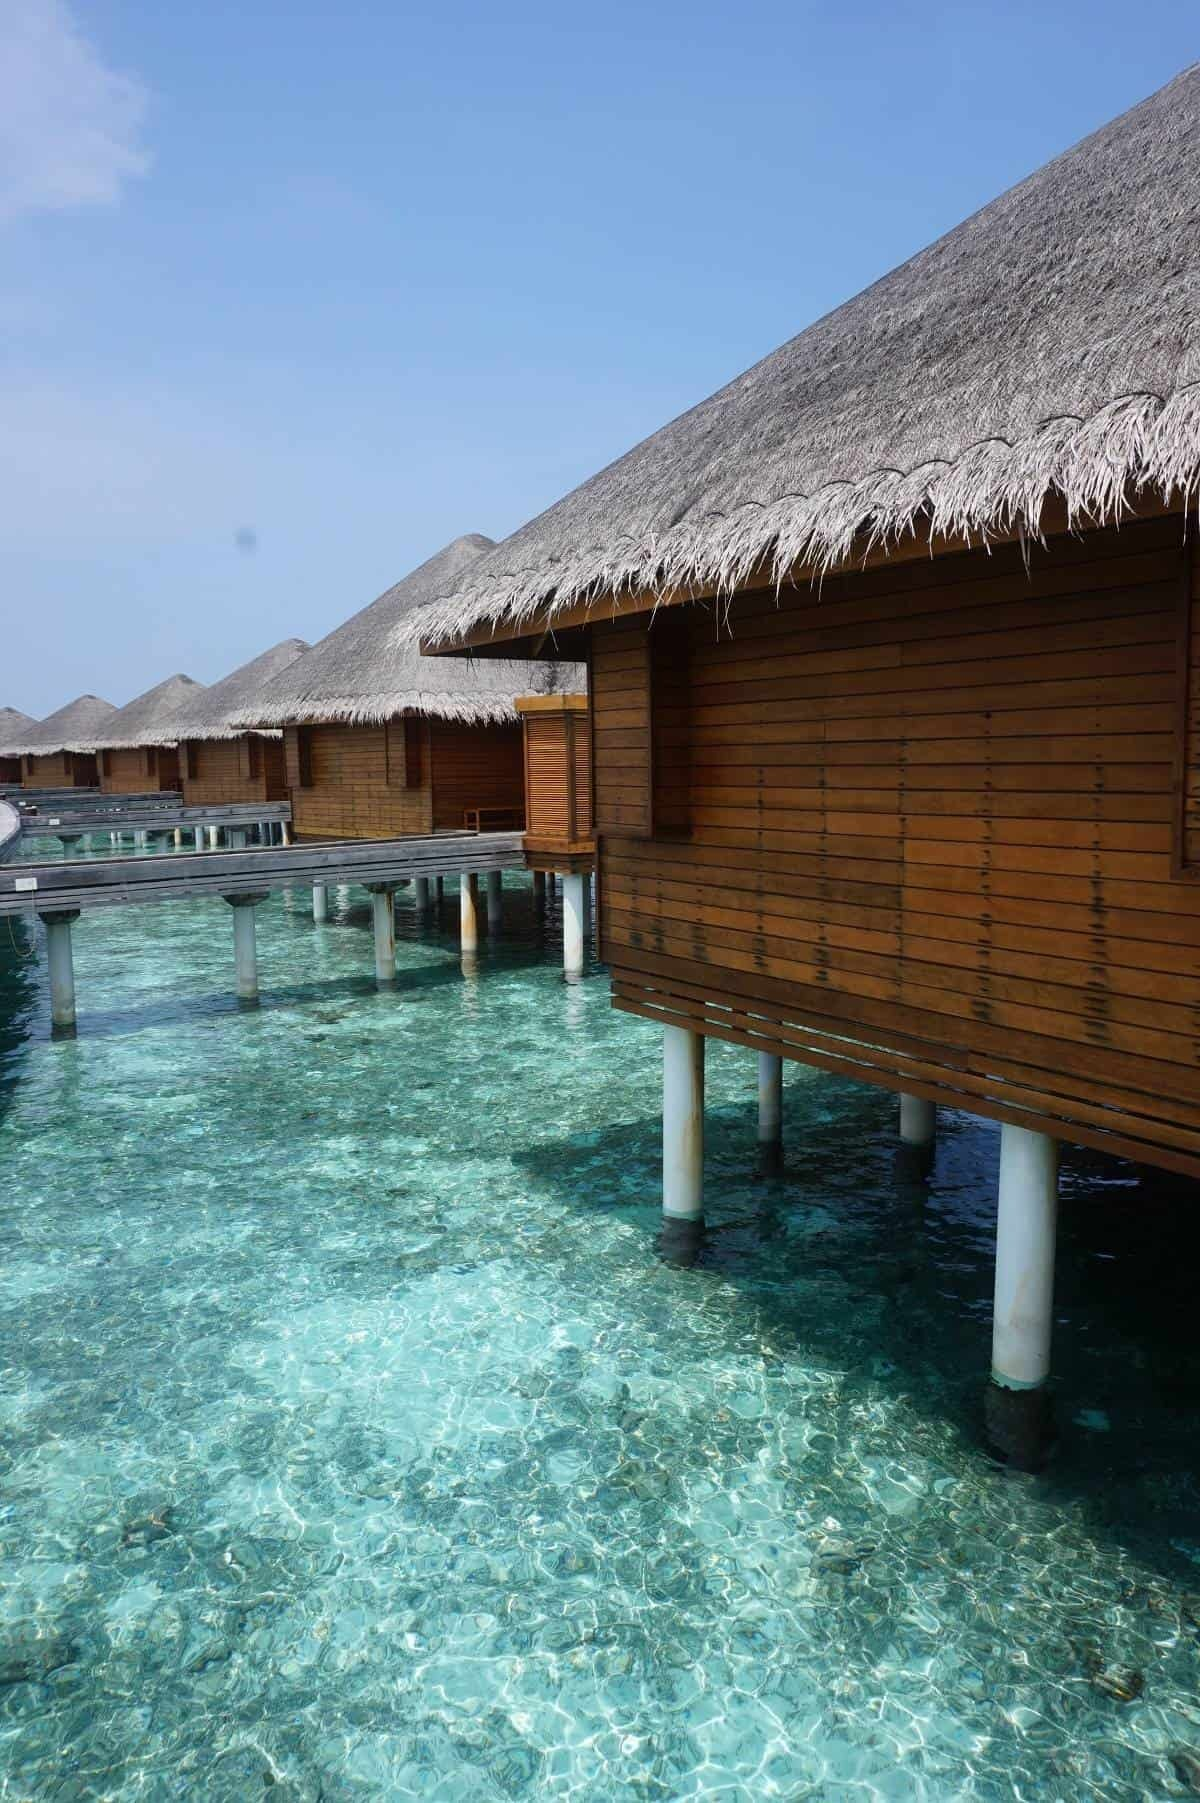 Ocean bungalow at Huvafen Fushi Maldives